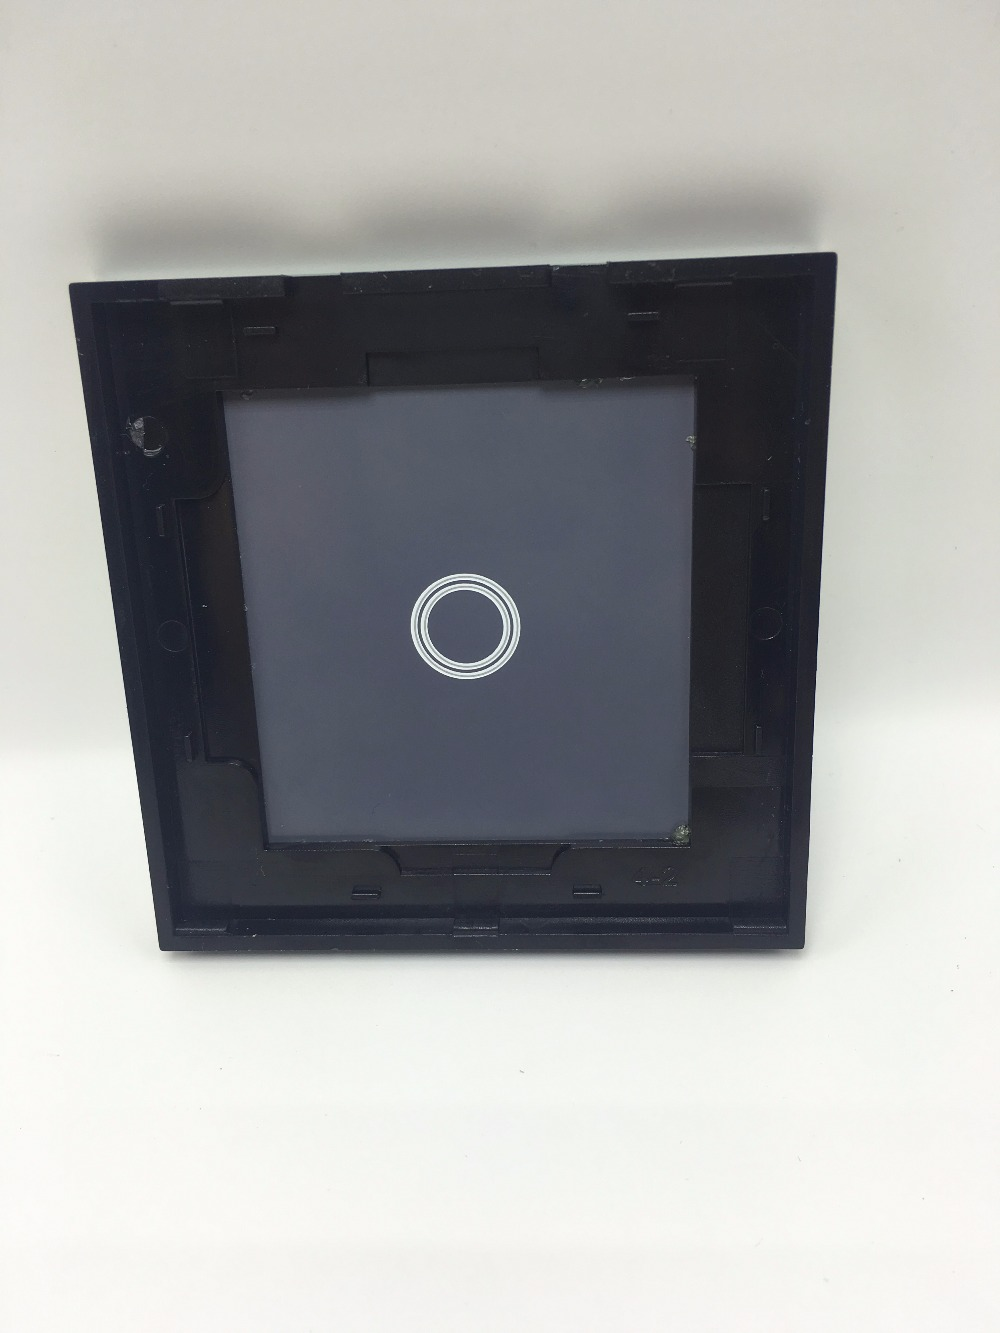 Luxury White black Pearl Crystal Glass, 80mm*80mm, EU standard, Single Glass Panel For 1 2 3 Gang Wall Touch Switc